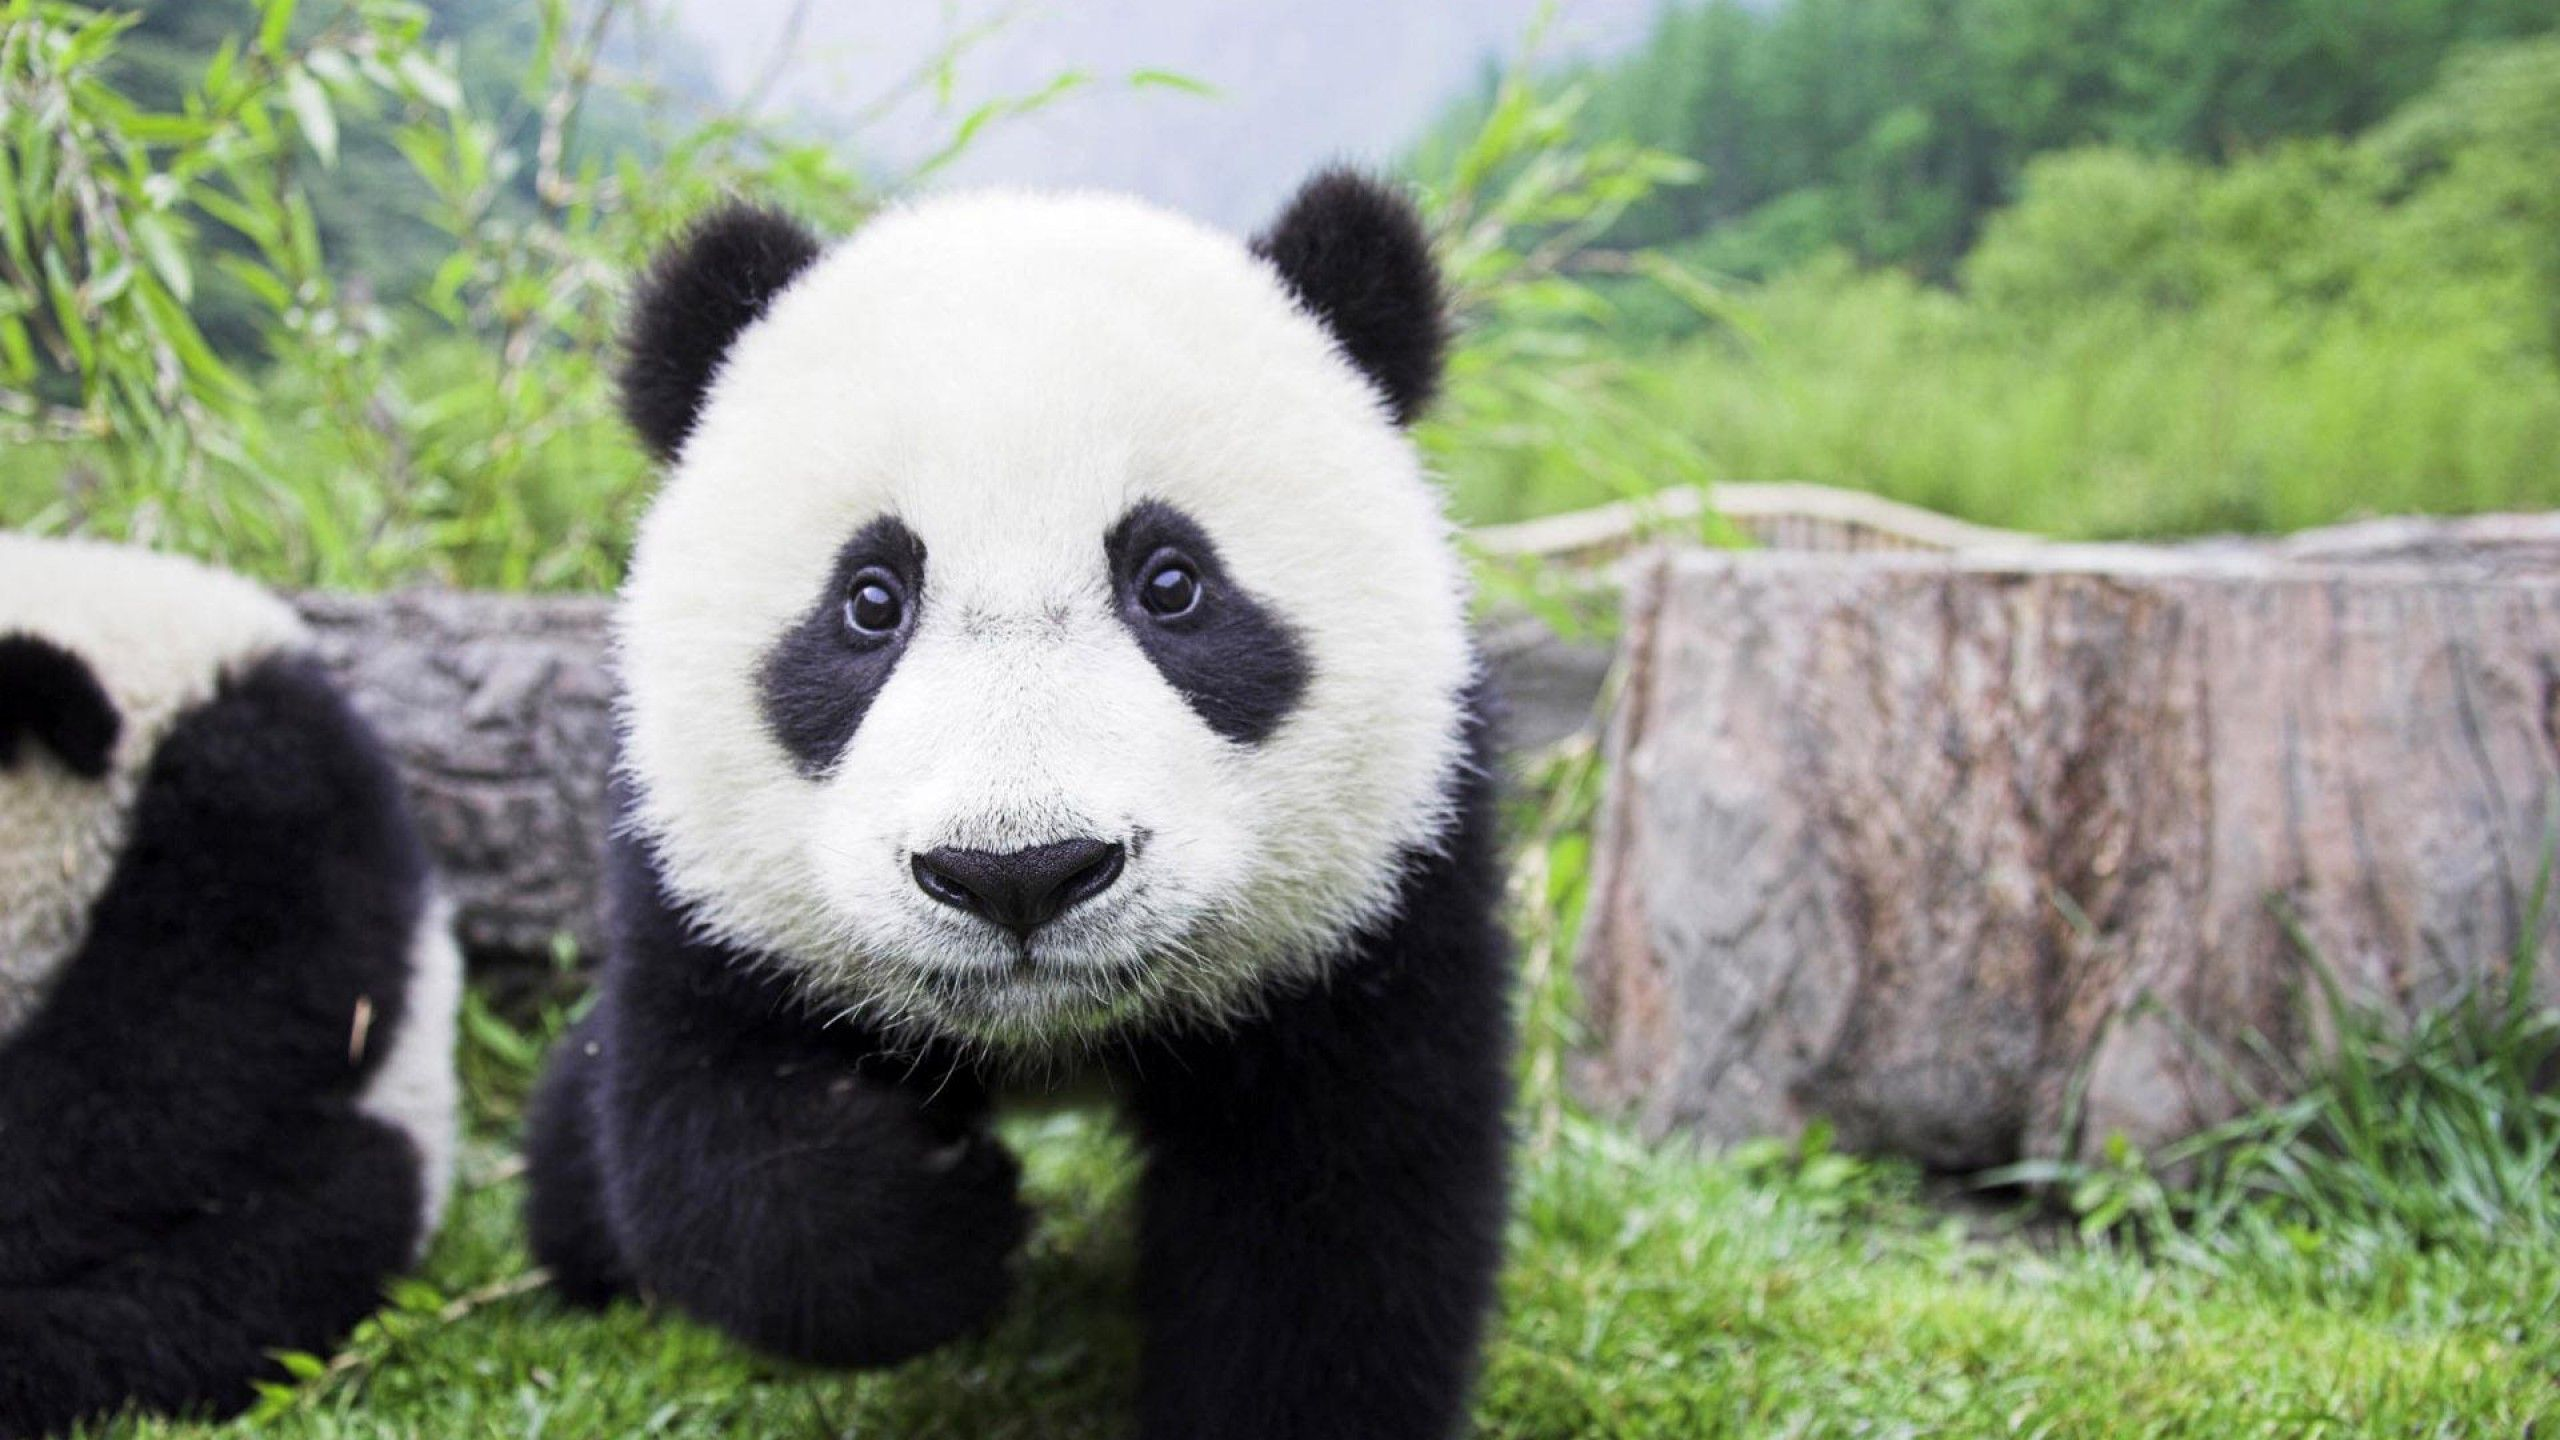 Panda Wallpaper 1920×1080 Panda Images Wallpapers (34